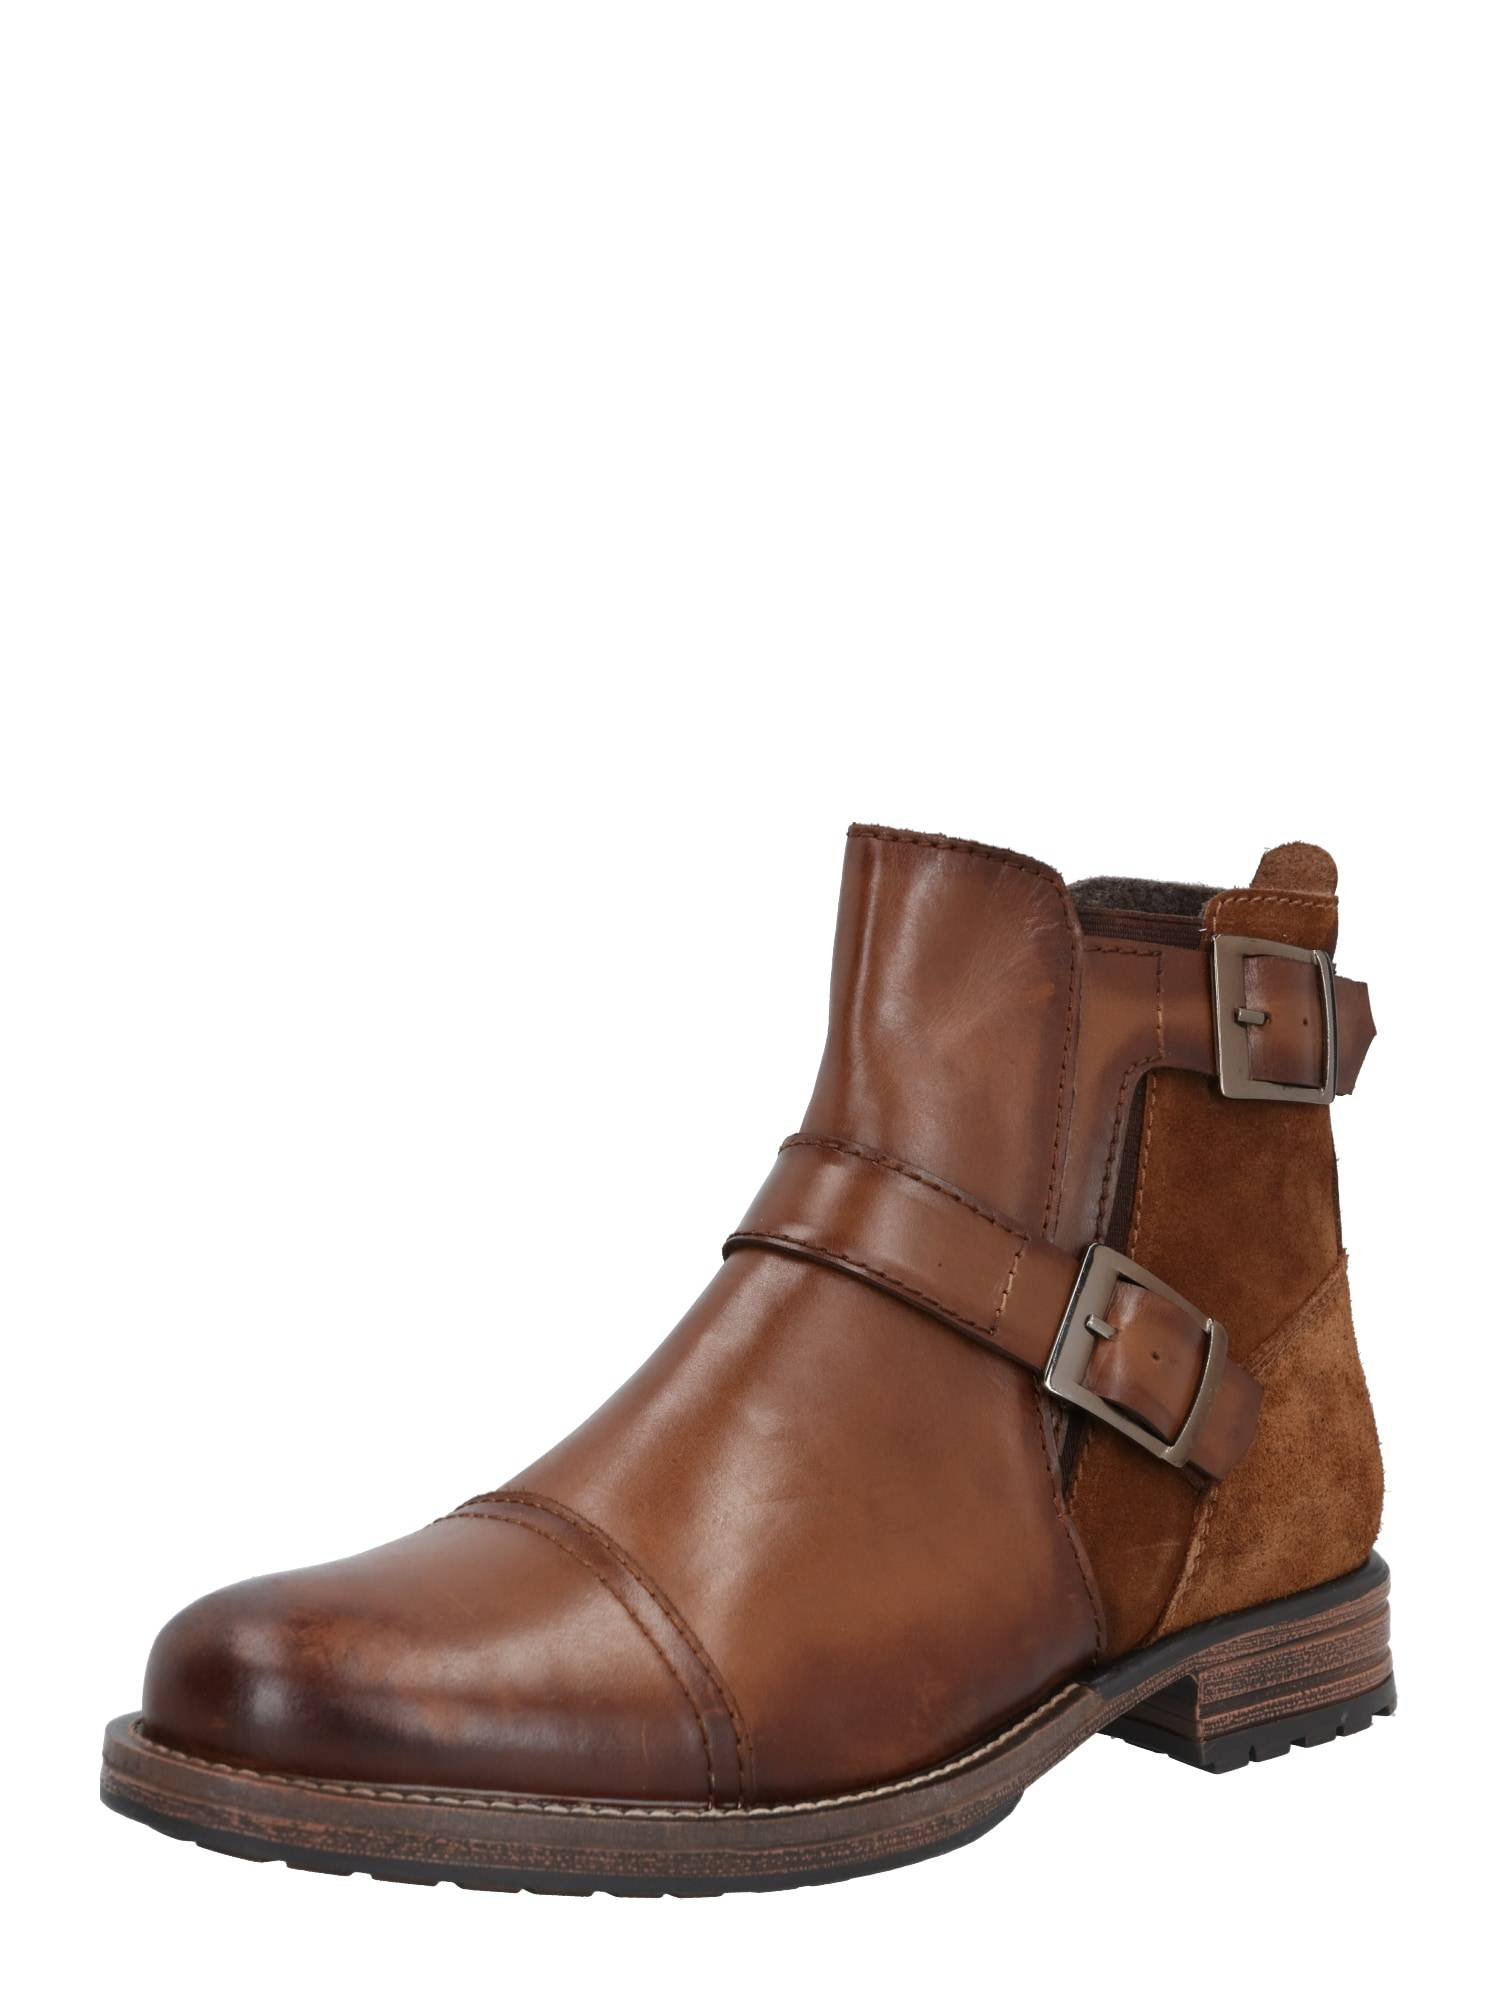 ABOUT YOU Boots 'Hennes'  - Marron - Taille: 46 - male